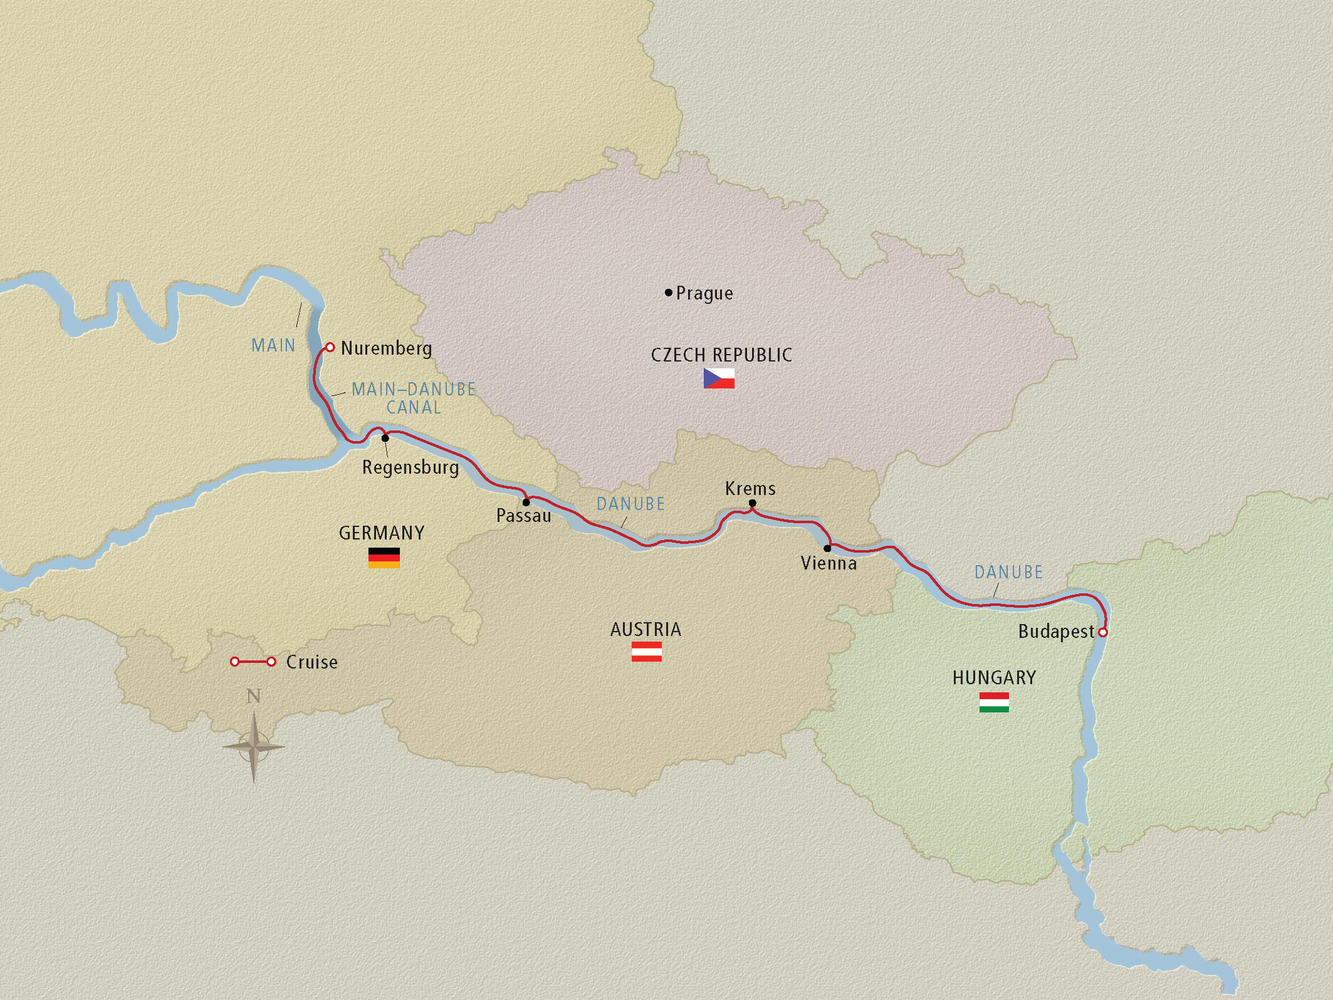 Danube River Cruise Map - Cruise Critic on greece on map, po river on map, thames river on map, yangtze river on map, elbe river on map, english channel on map, amazon river on map, alps on map, oder river on map, tigris river on map, euphrates river on map, don river on map, dnieper river on map, mosel river on map, ganges river on map, caspian sea on map, rhone river on map, strait of gibraltar on map, seine river on map, indus river on map,